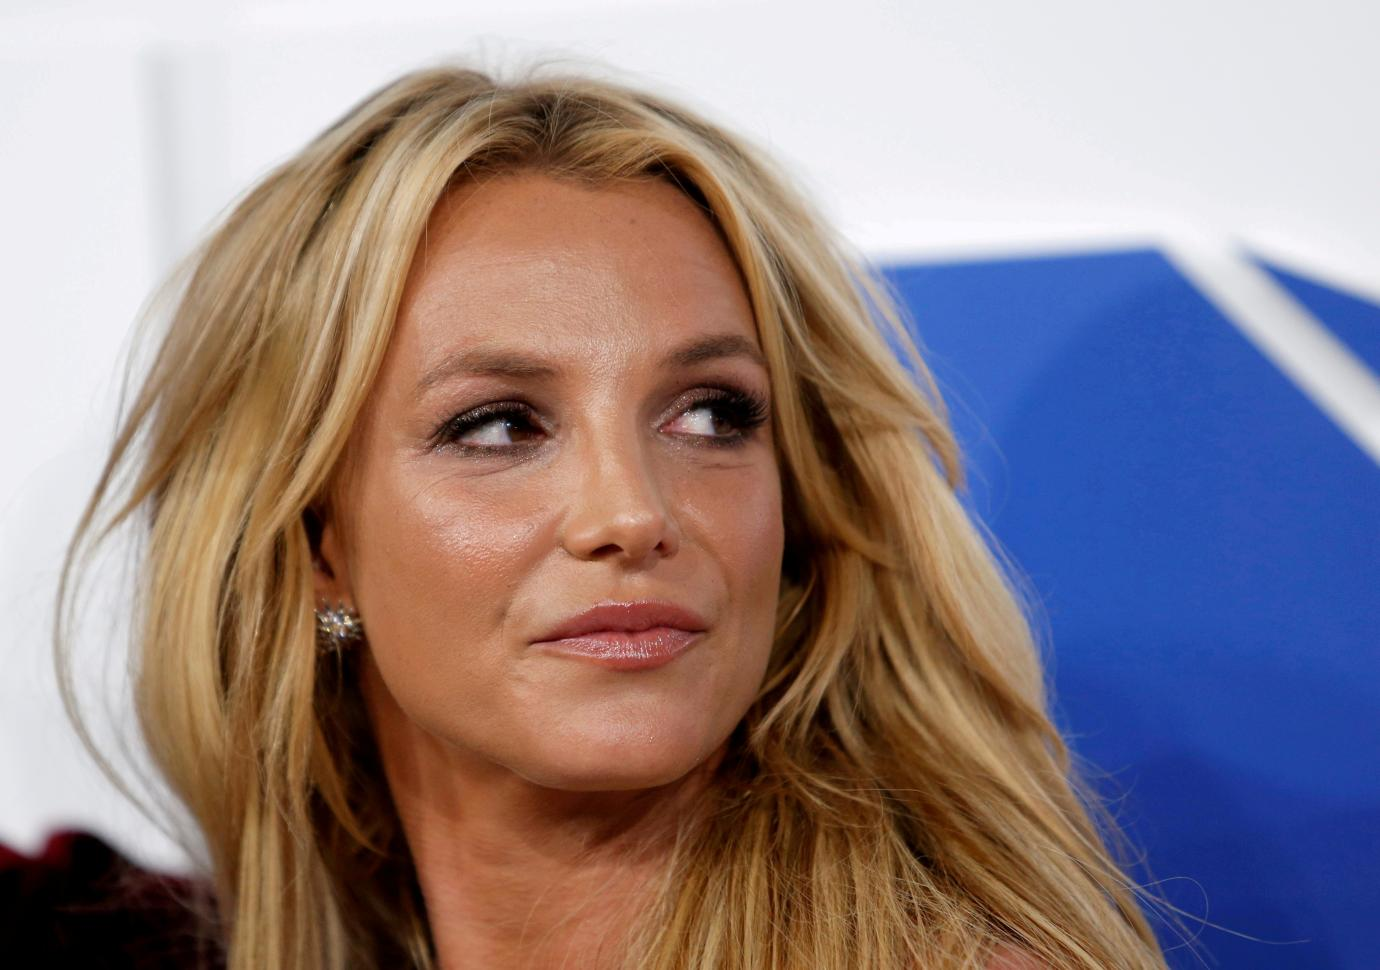 Finest Britney Spears Nude Photographs Pictures